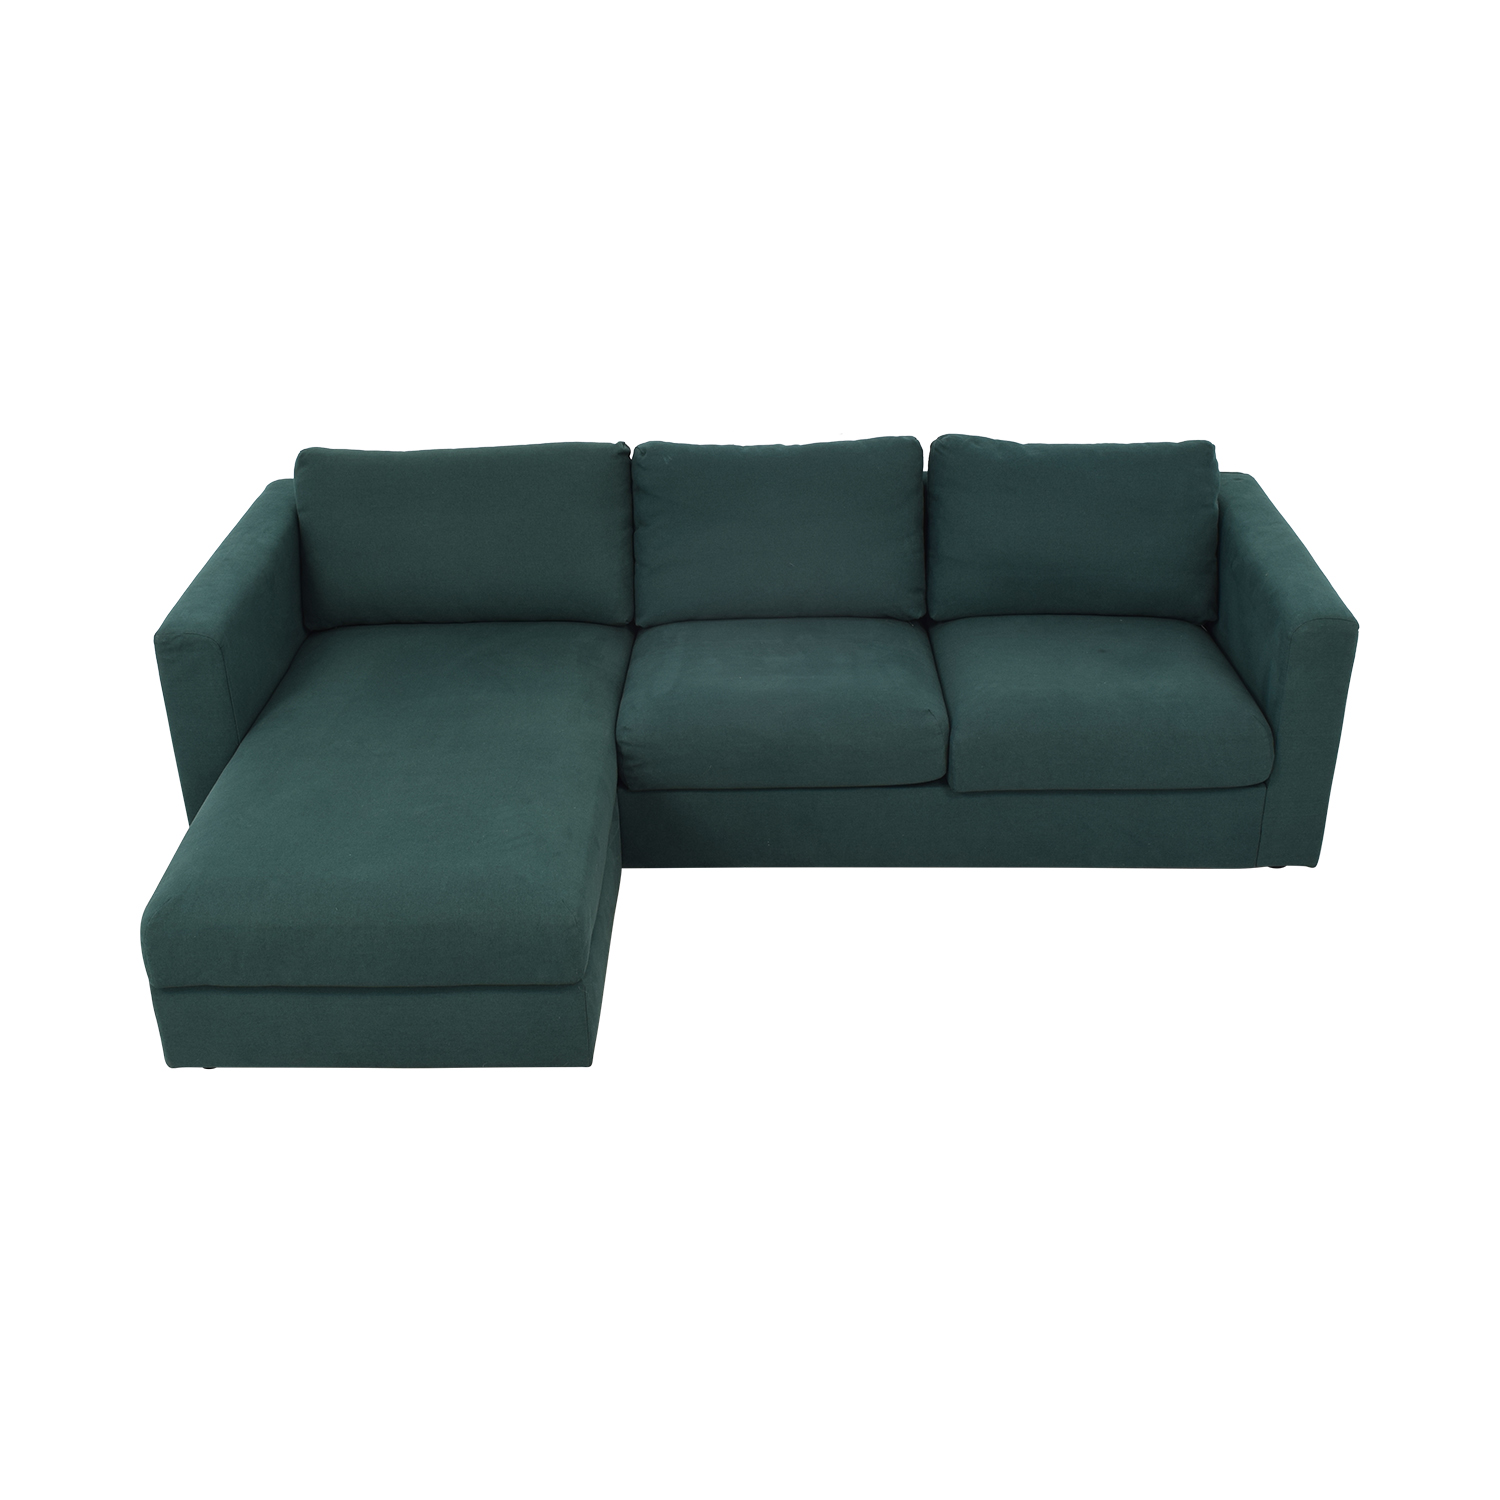 Fine 57 Off Ikea Ikea Storage Chaise Sectional Sofa Sofas Pabps2019 Chair Design Images Pabps2019Com